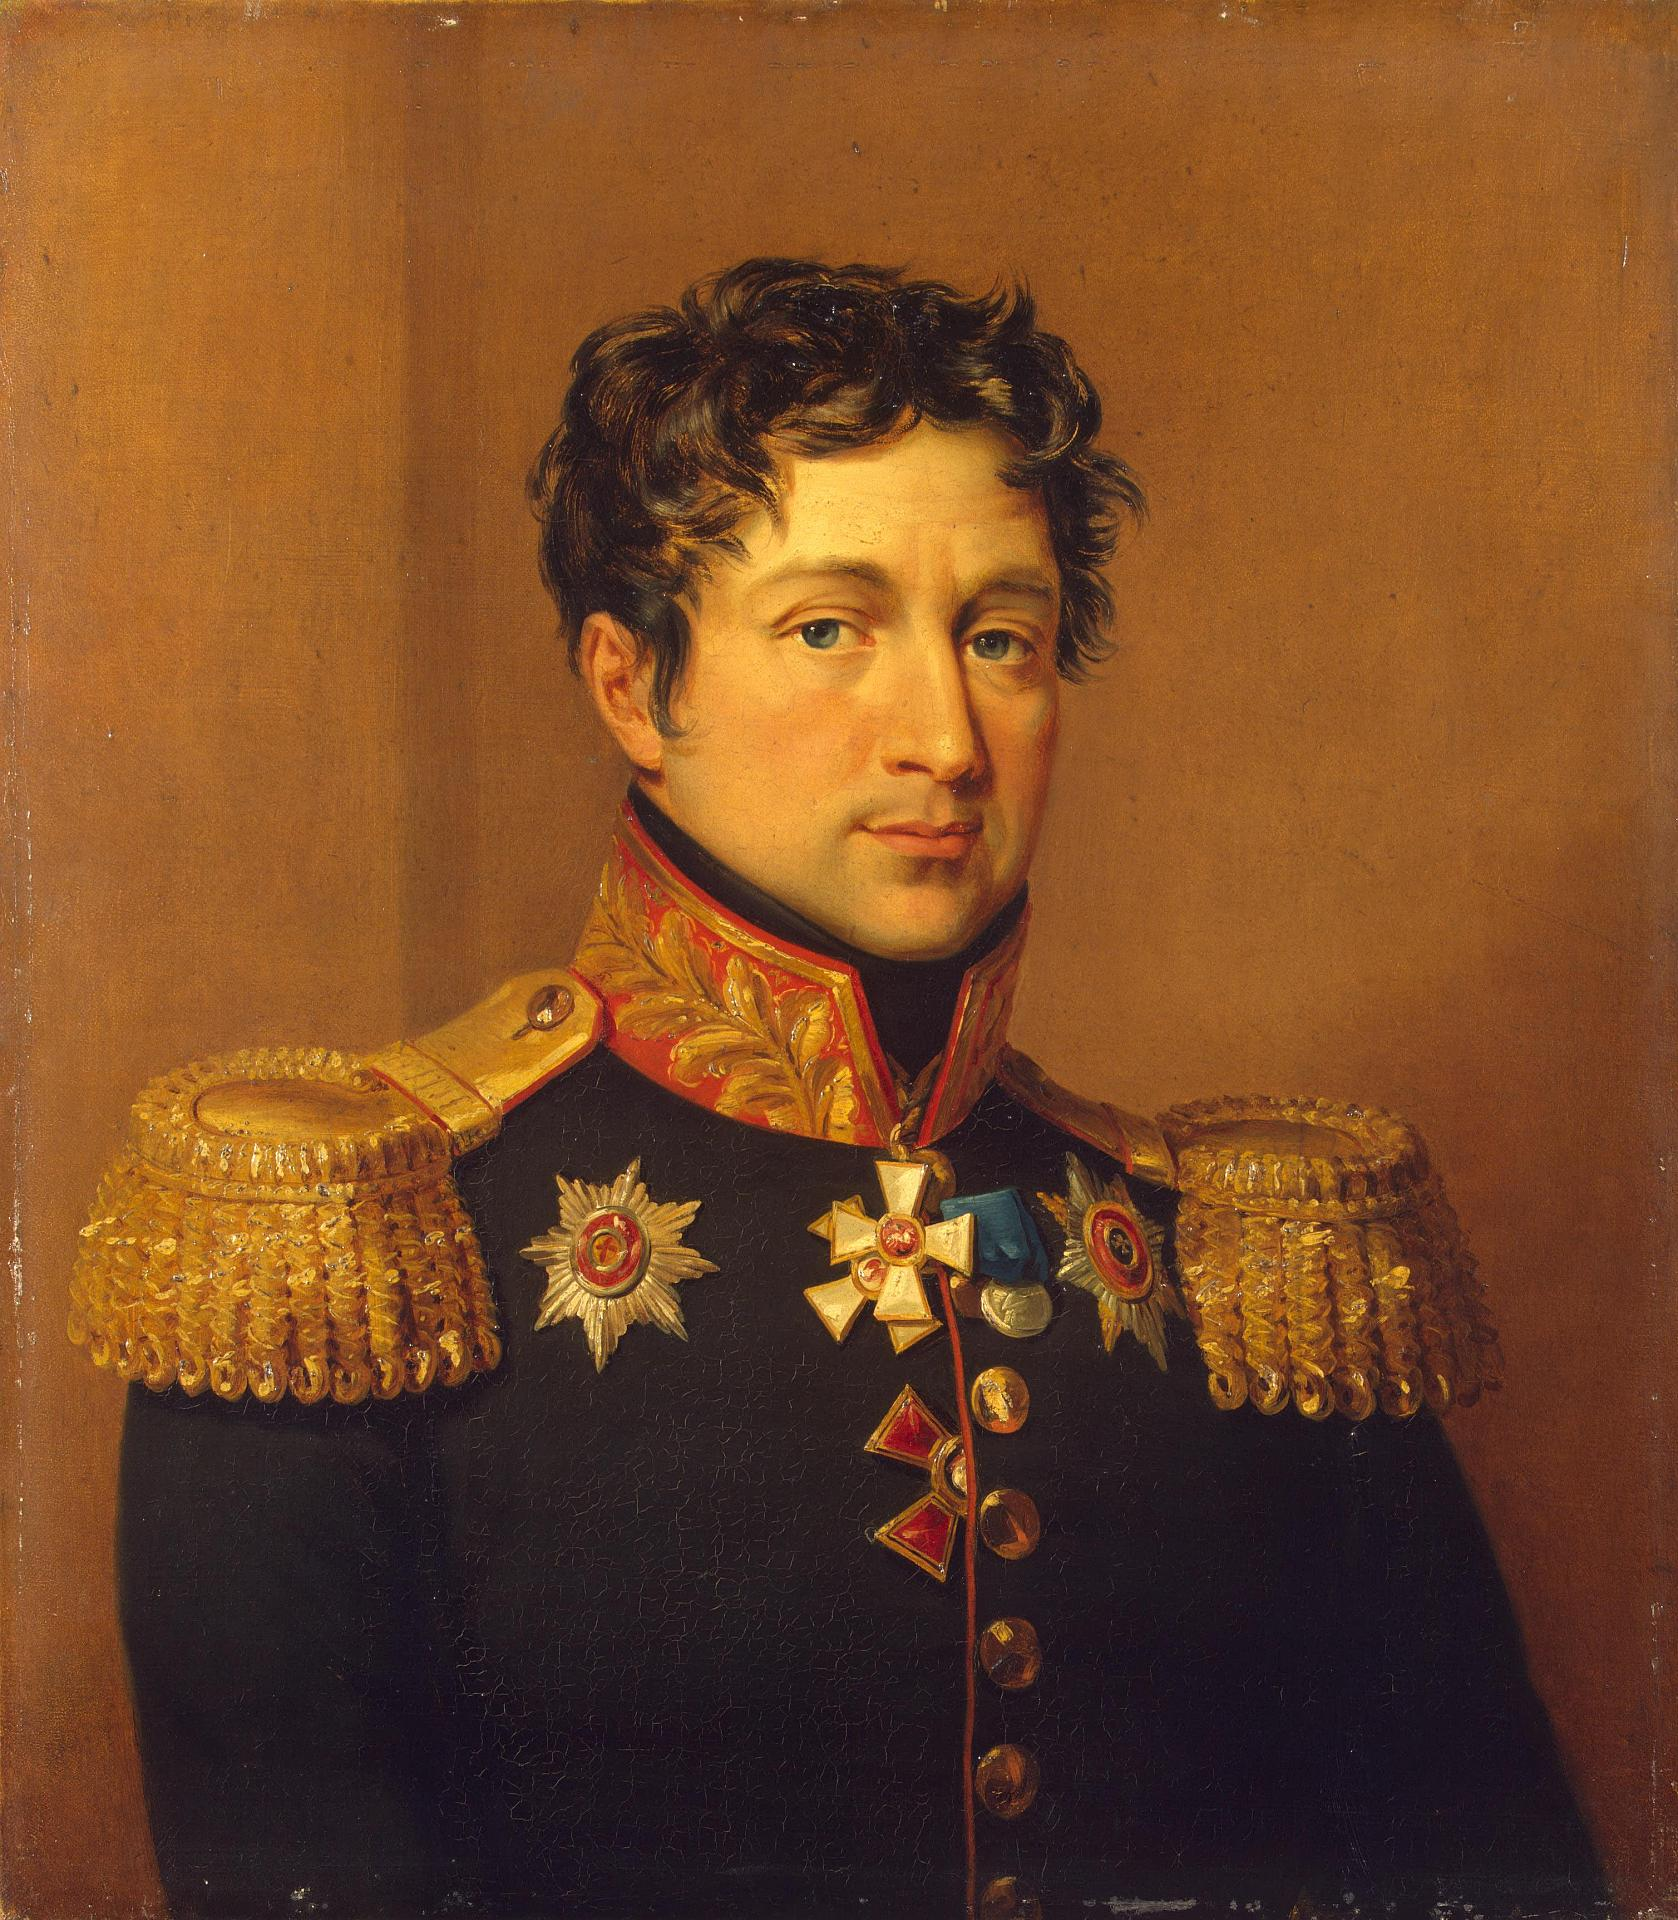 https://upload.wikimedia.org/wikipedia/commons/6/60/Olsufjev_1_Zahar_Dmitrievich.jpg